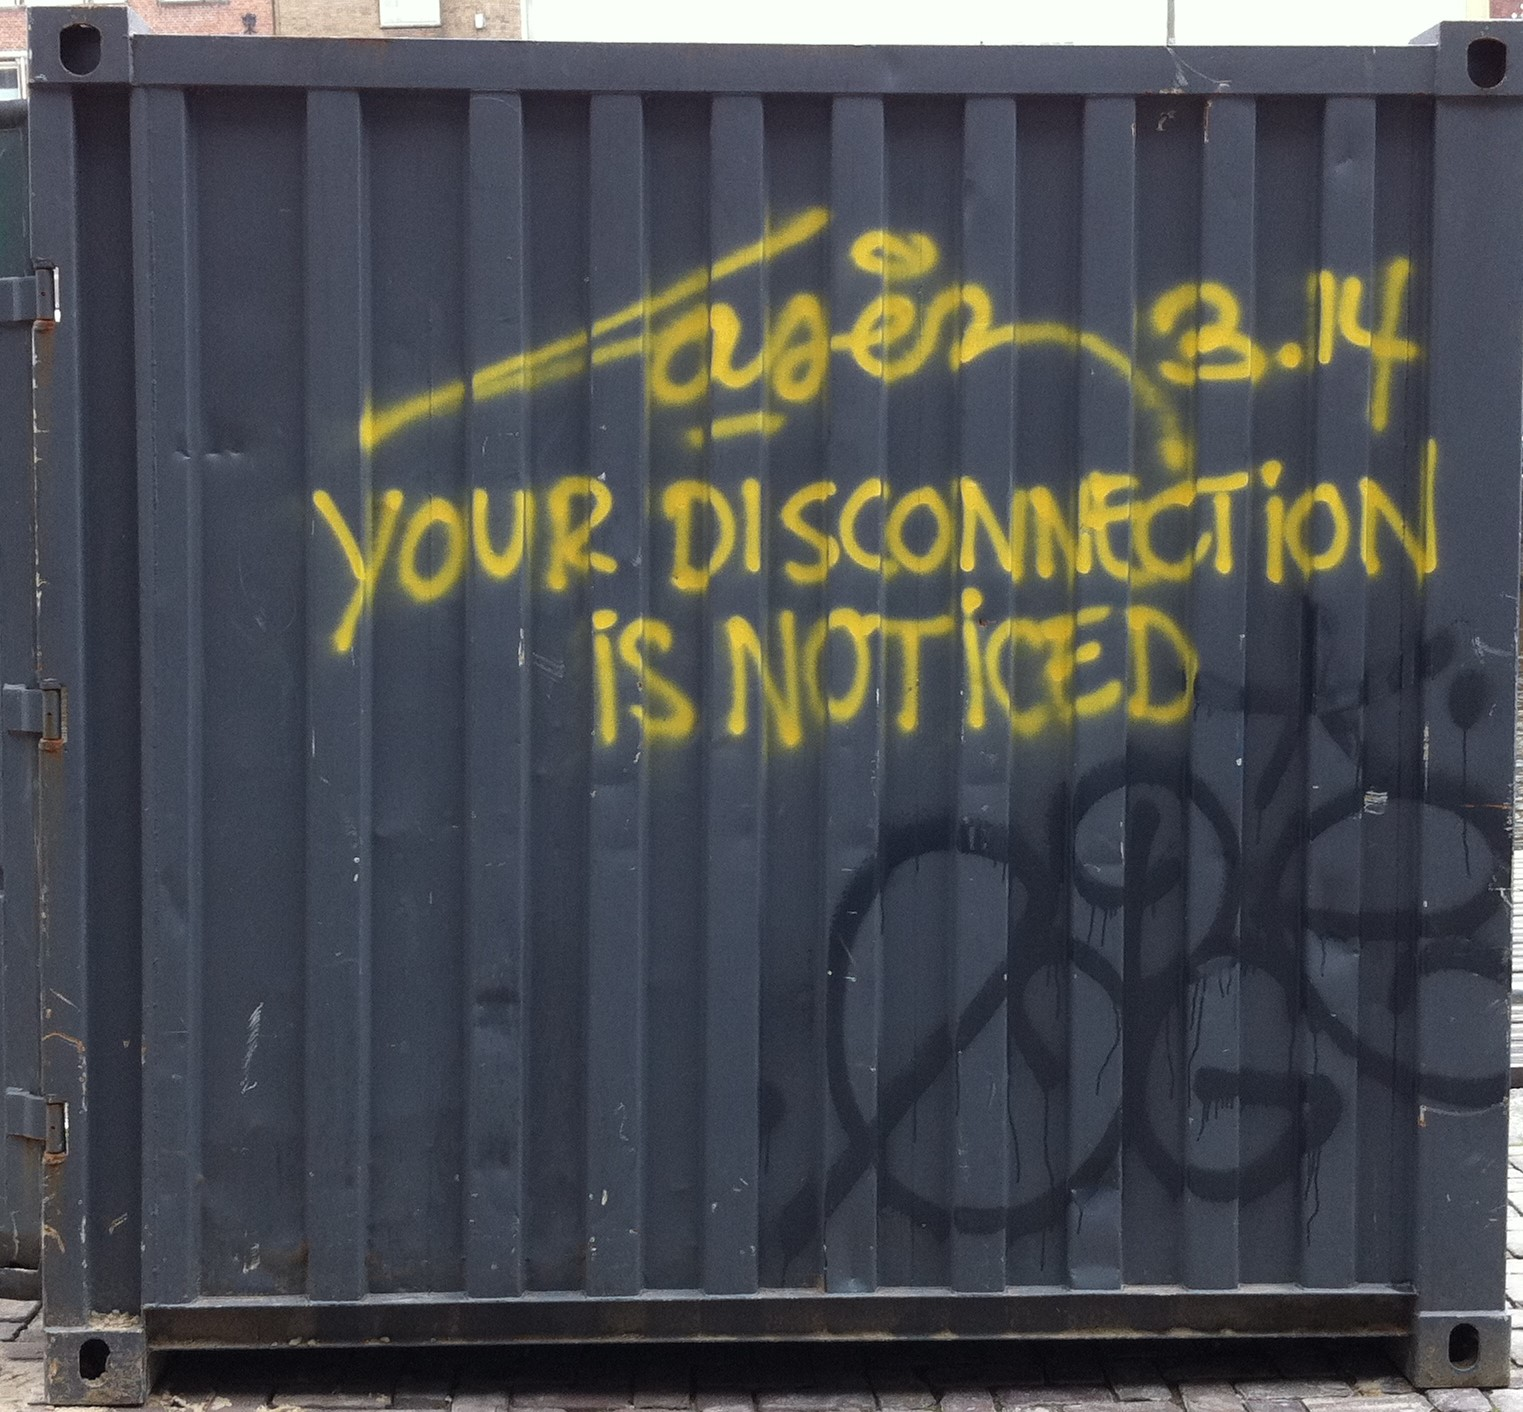 Your disconnection is noticed (2)